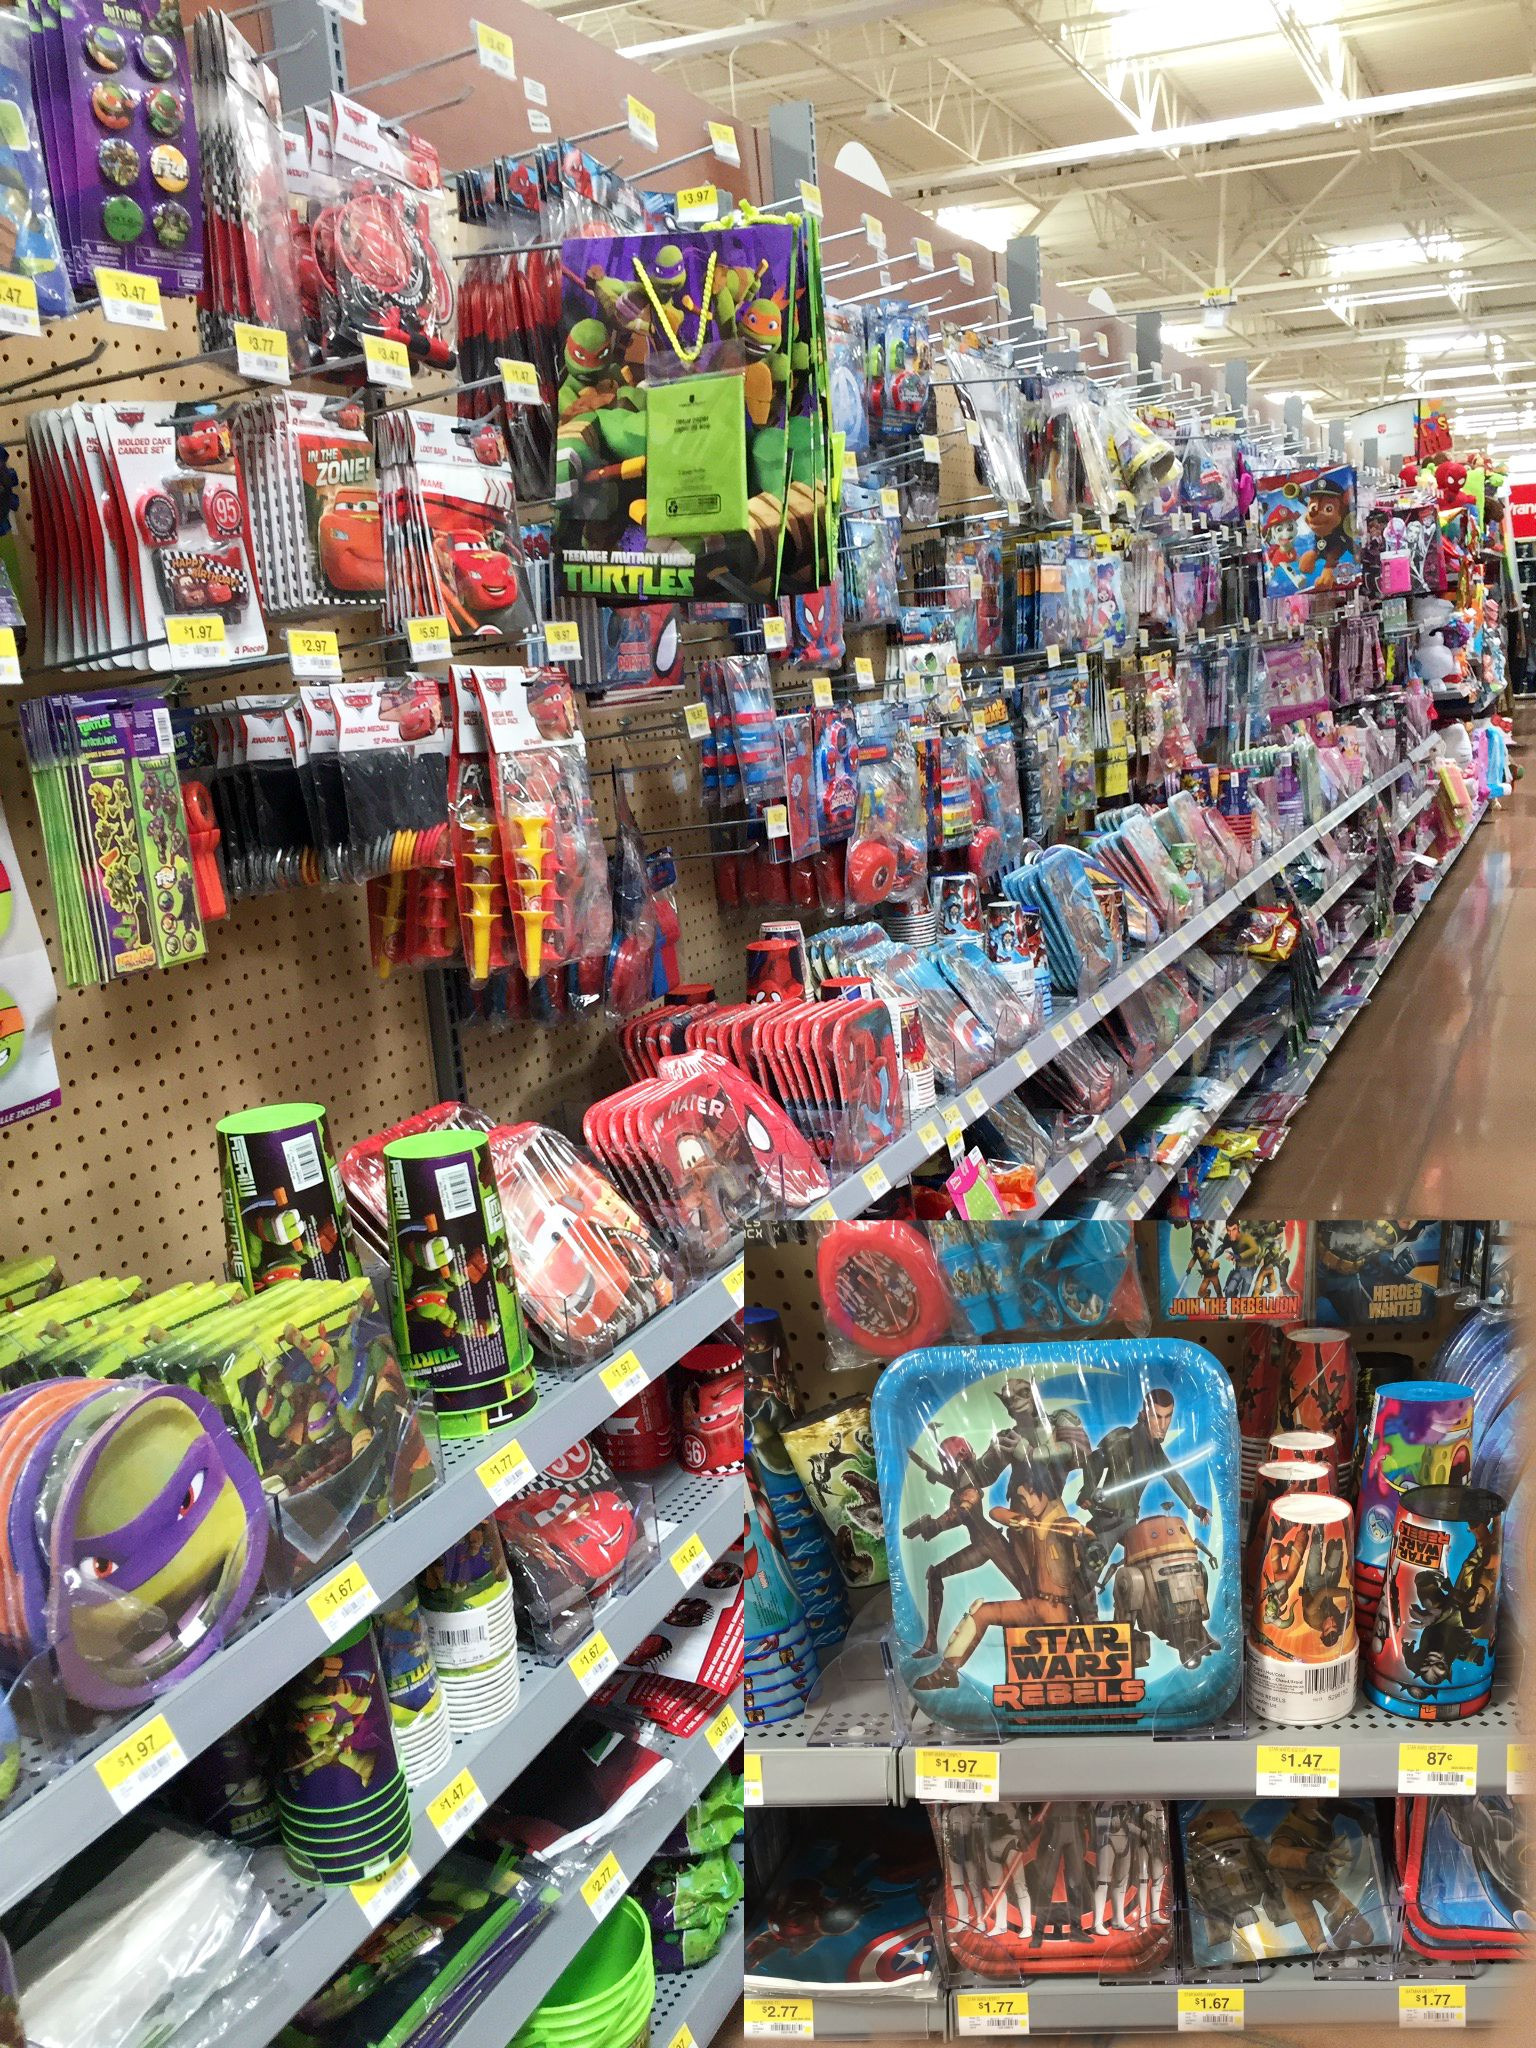 Best ideas about Walmart Birthday Decorations . Save or Pin Star Wars Rebels Party Ideas Eclectic Momsense Now.